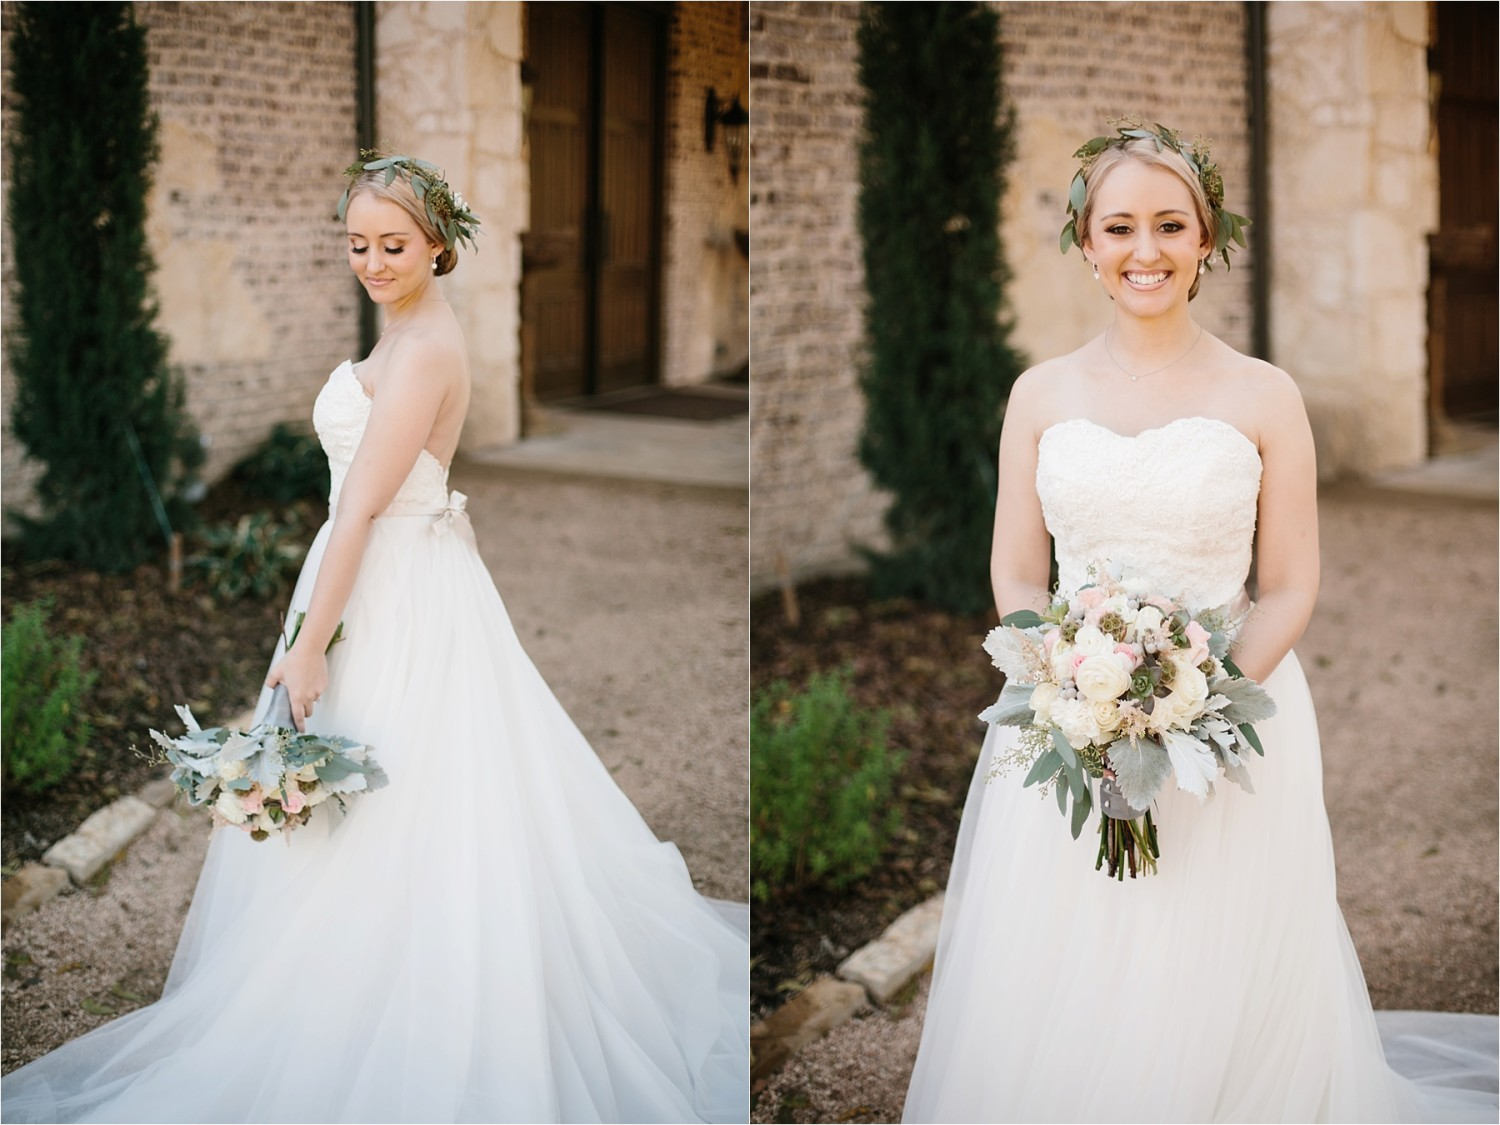 brad-lara-__-a-grey-and-blush-pink-intimate-wedding-at-hidden-waters-event-center-in-waxahachie-tx-by-north-texas-wedding-photographer-rachel-meagan-photography-_-018